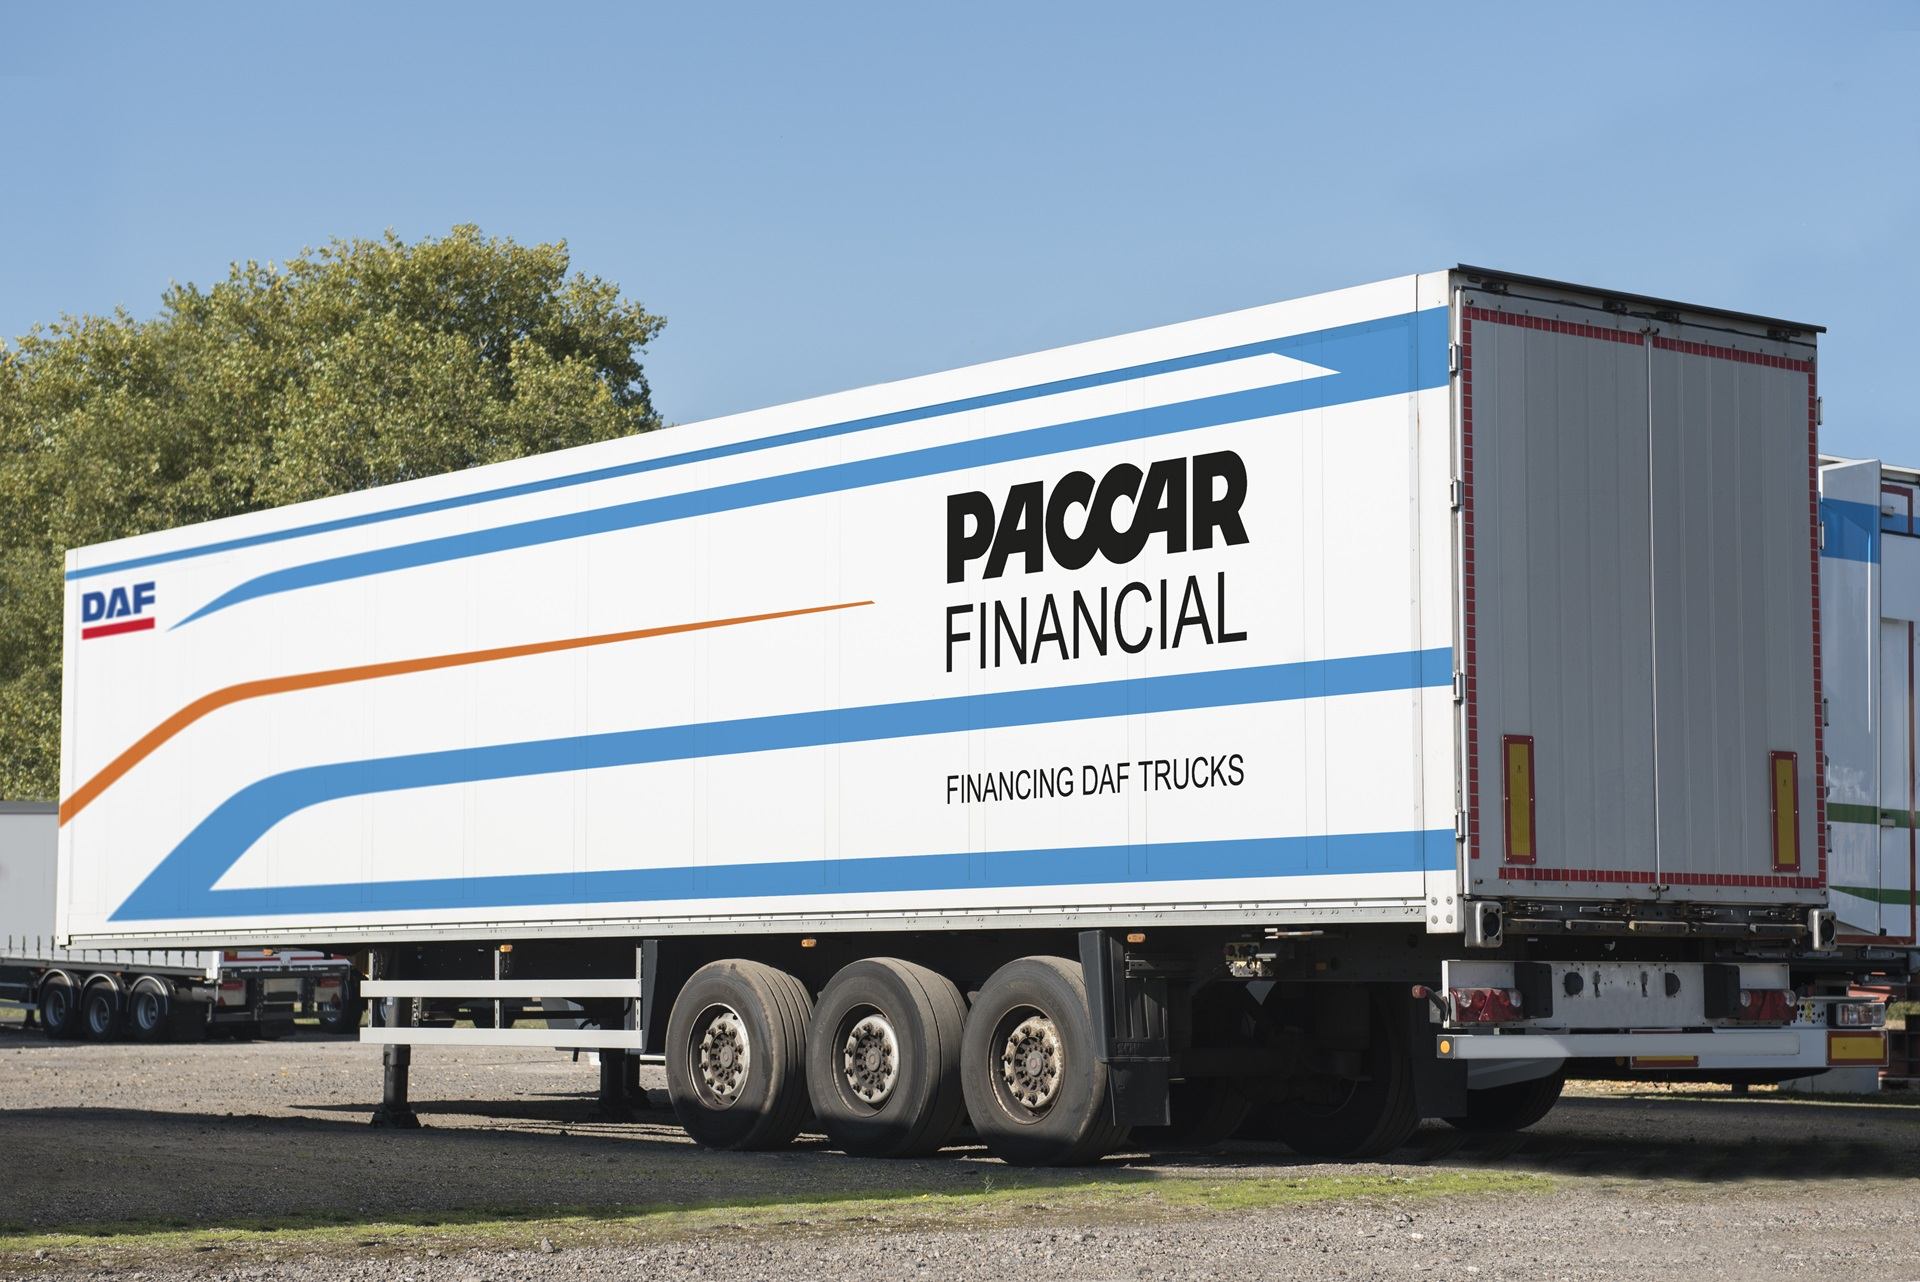 PACCAR-Financial-Trailer-2018